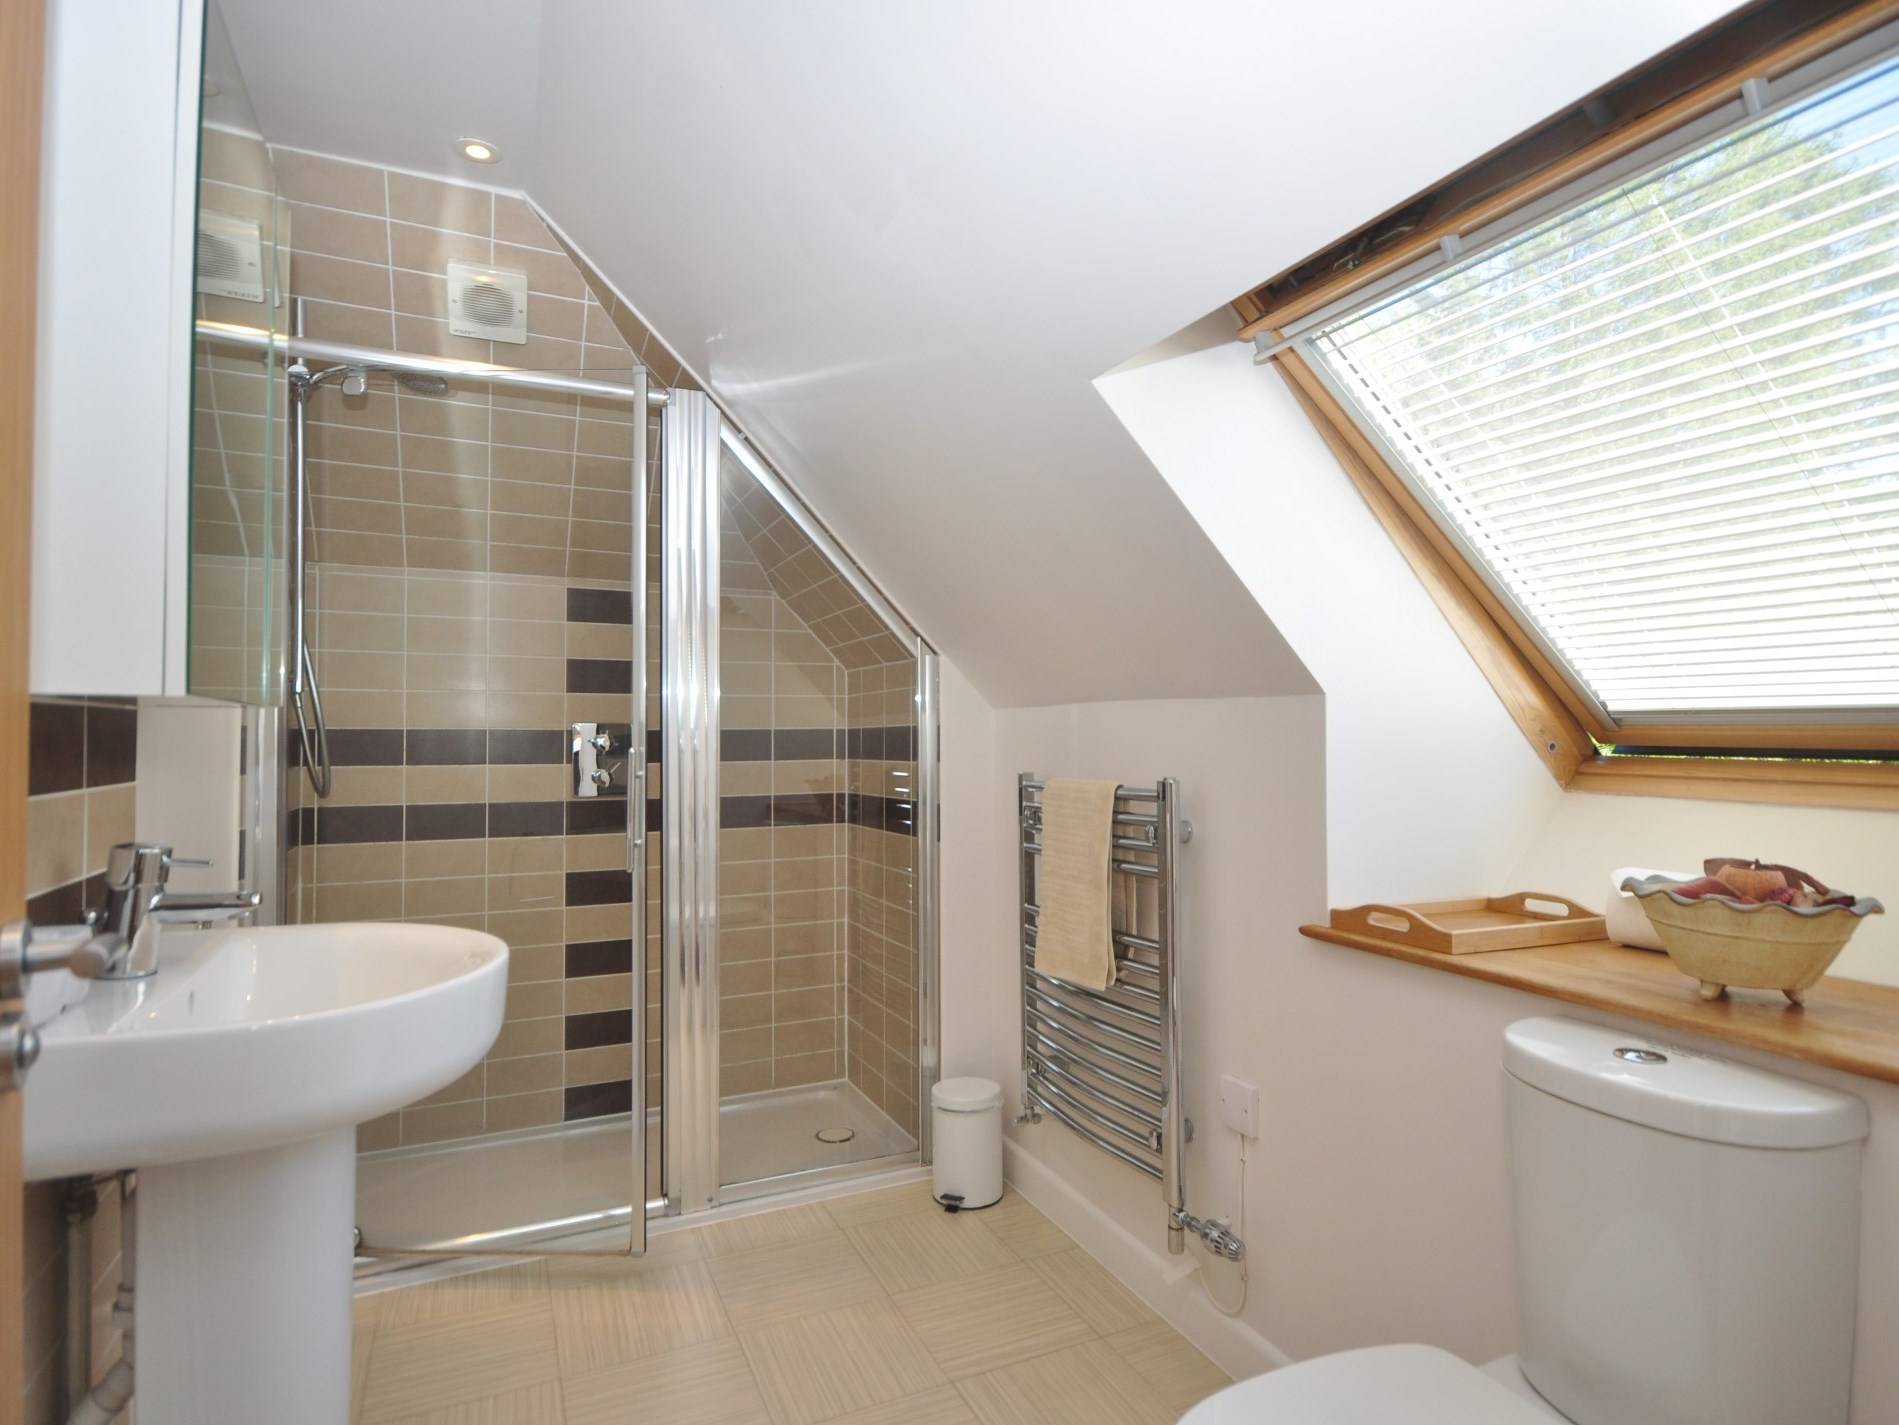 A large walk-in style shower